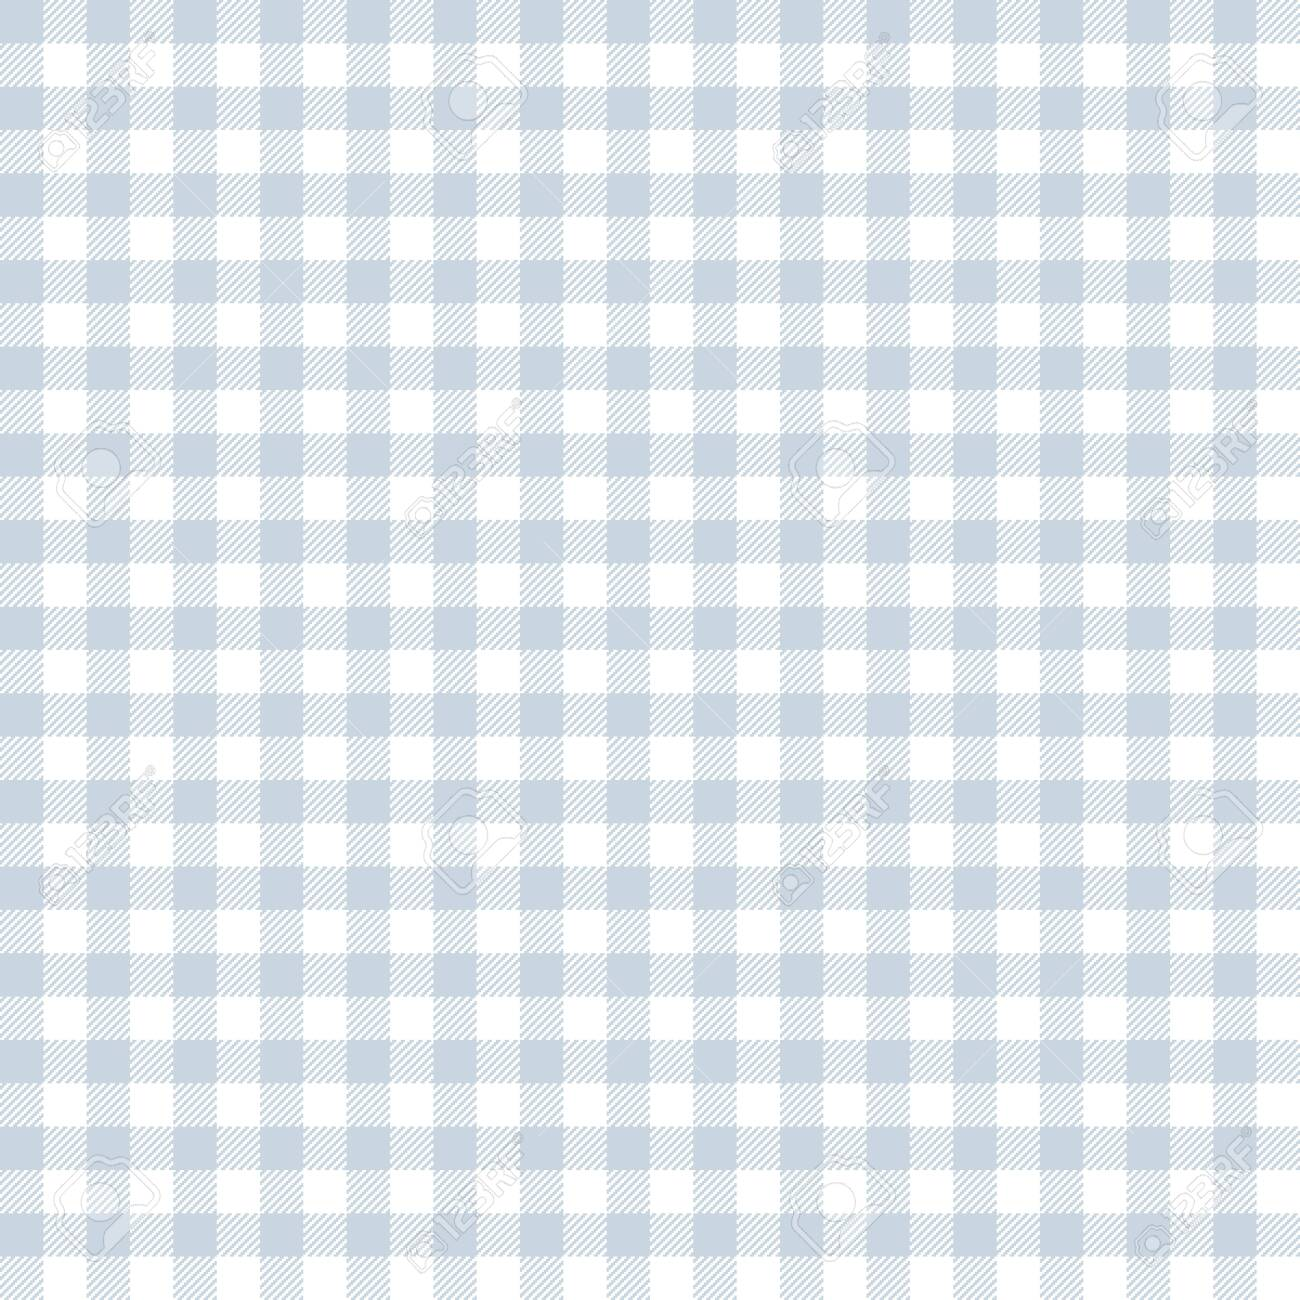 Gingham seamless pattern. Texture from rhombus/squares for - plaid, tablecloths, clothes, shirts, dresses, paper, bedding, blankets, quilts and other textile products. - 143405947